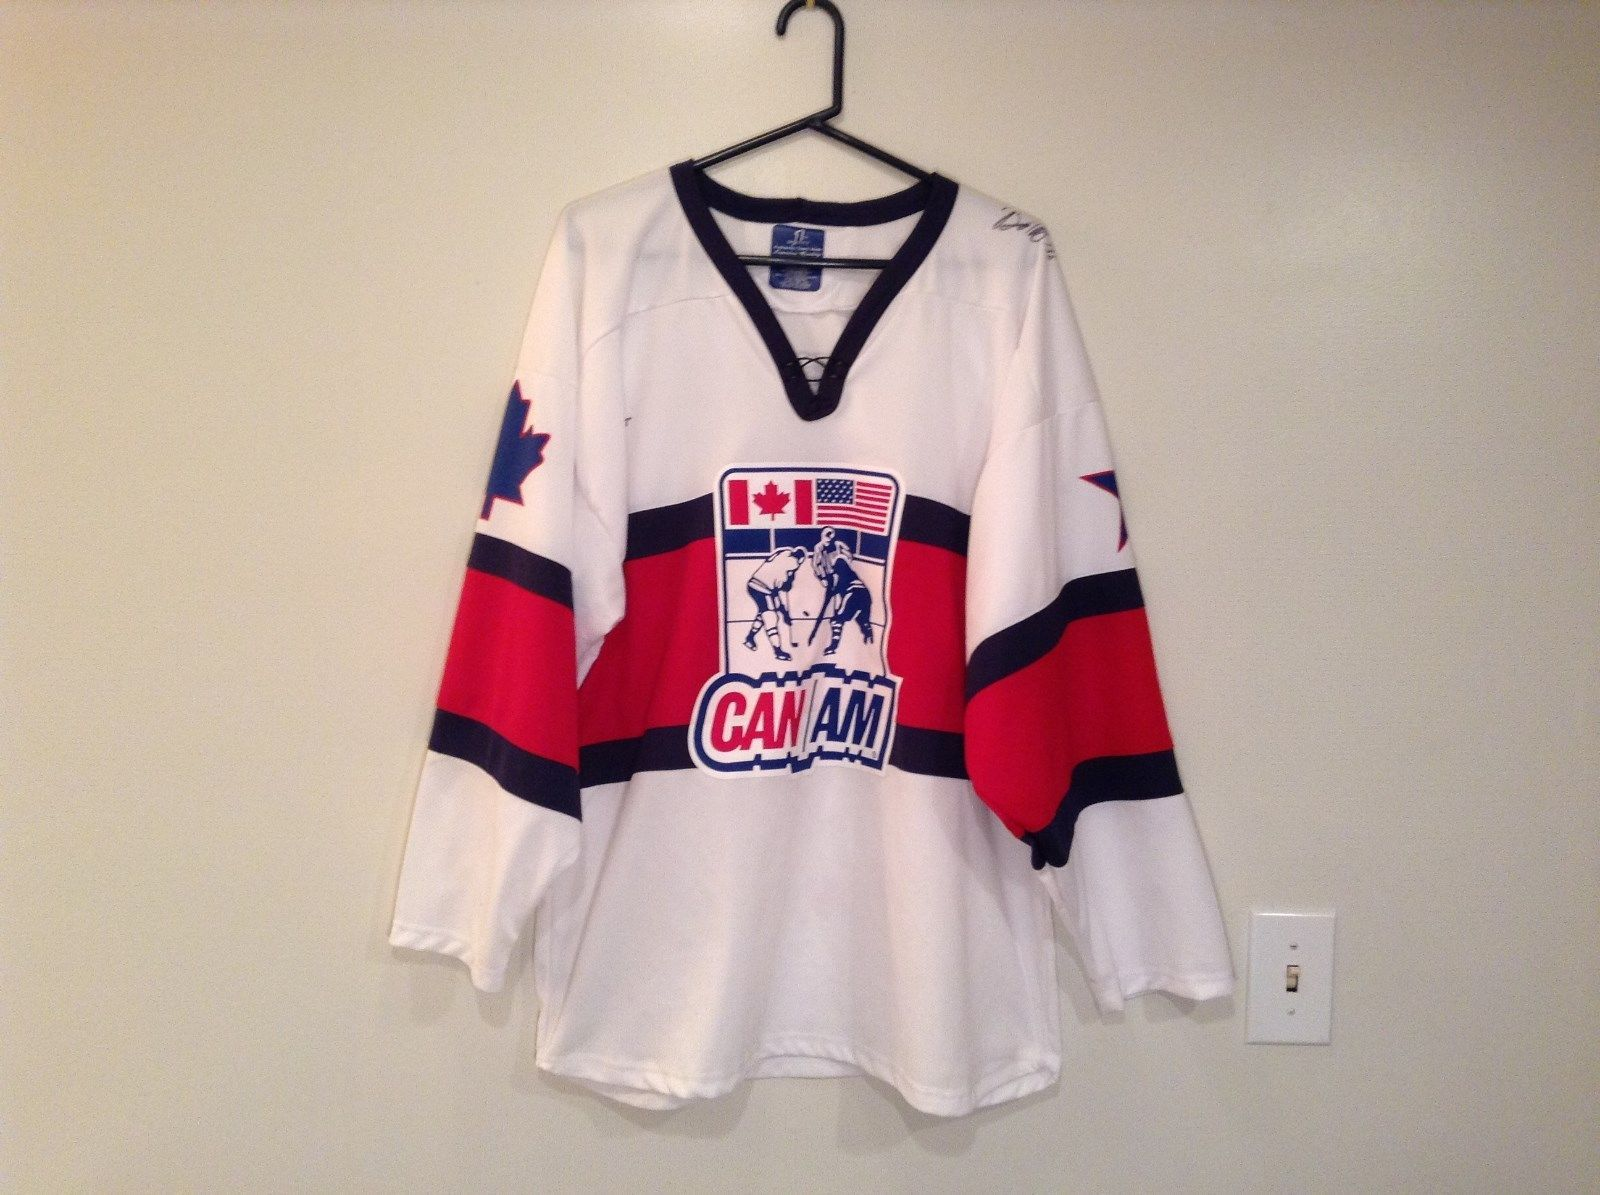 Sport Jersey Hockey White with Red Blue Stripes Canada USA One Size 2 Autographs